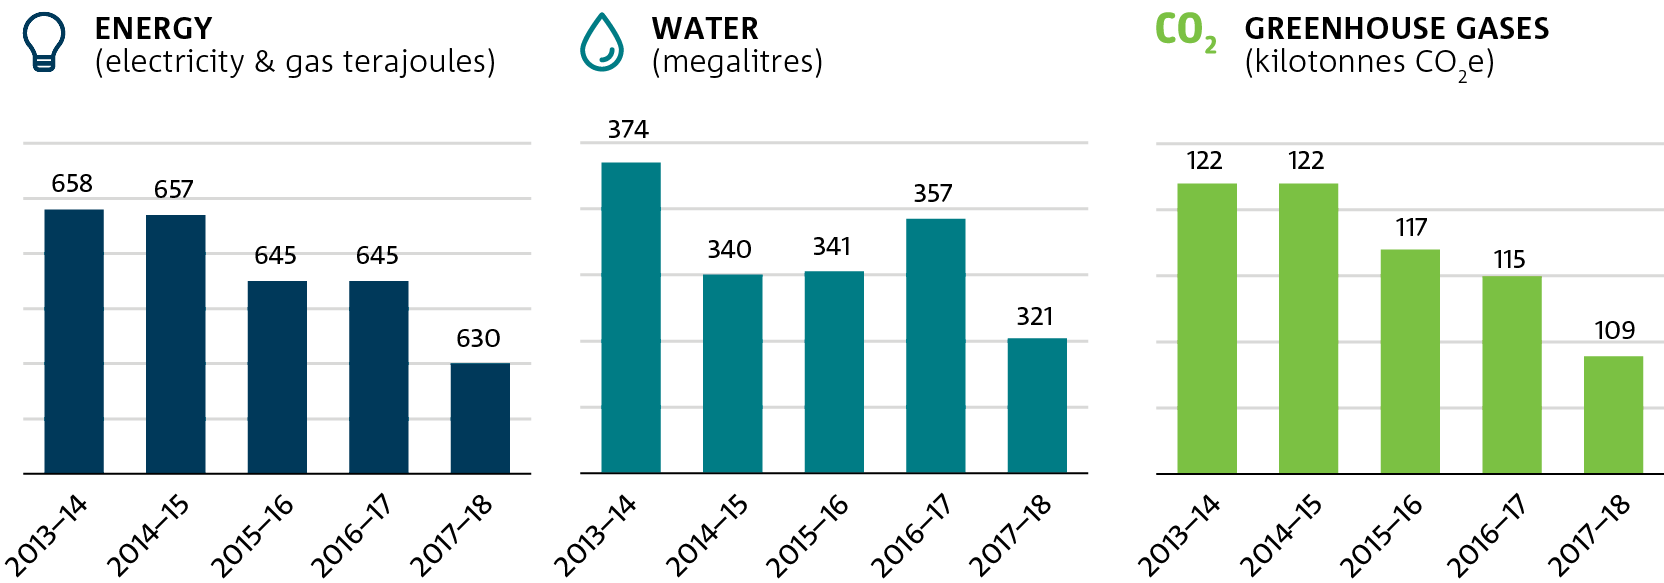 Bar chart showing CSIRO energy and water consumption, and greenhouse gas emissions (electricity and gas only) from 2013 to 2018.